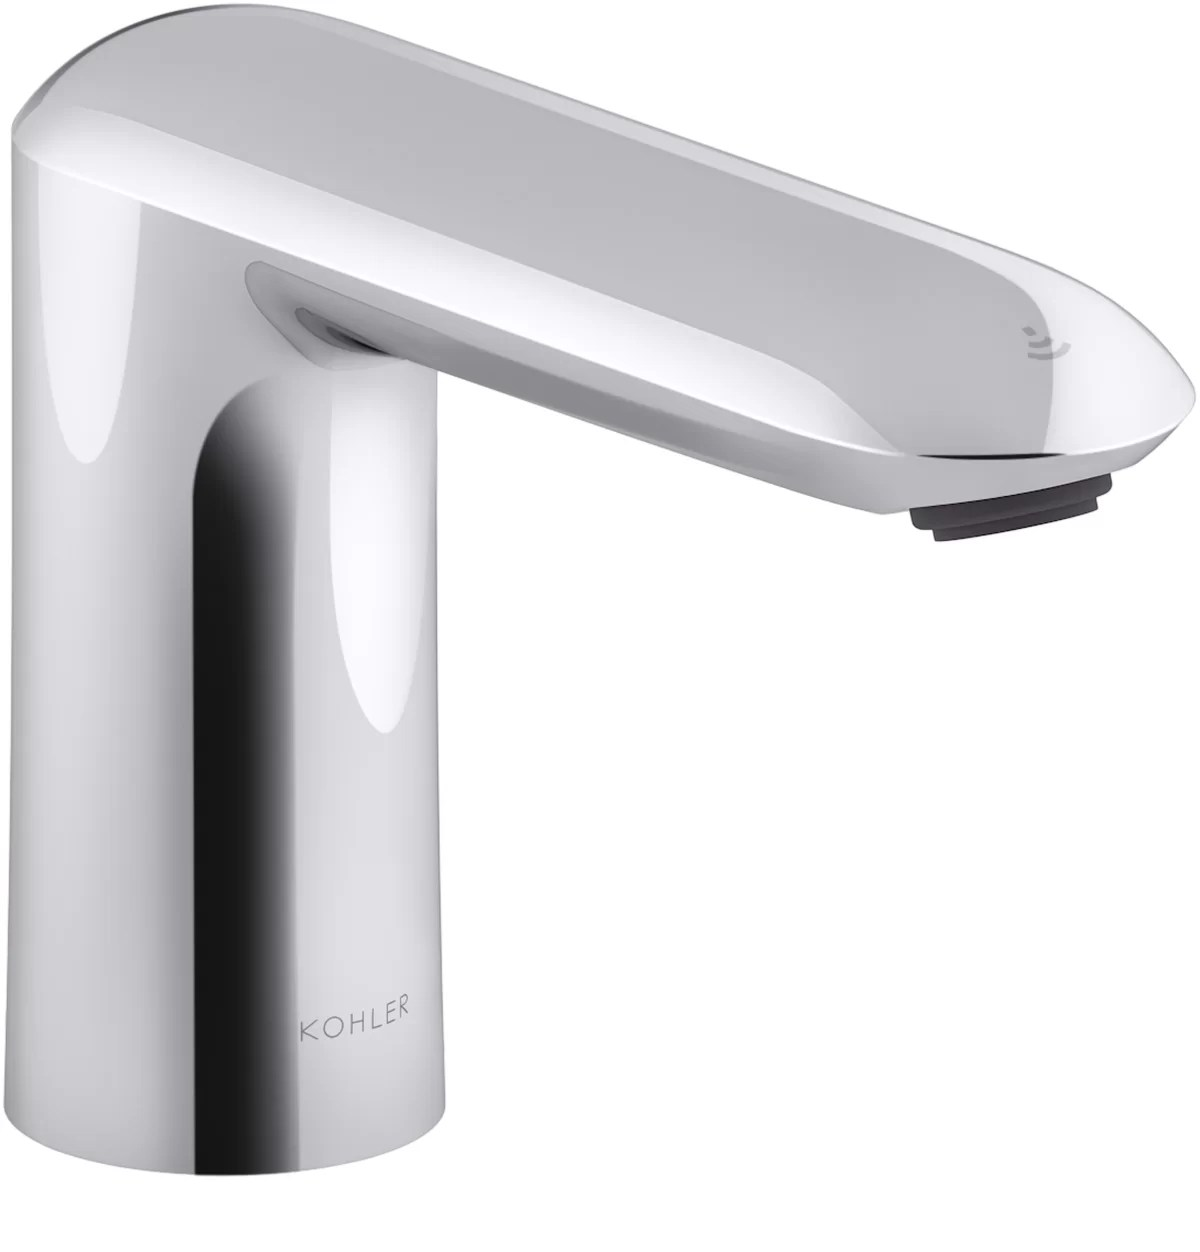 kumin touchless bathroom sink faucet with kinesis sensor technology dc powered